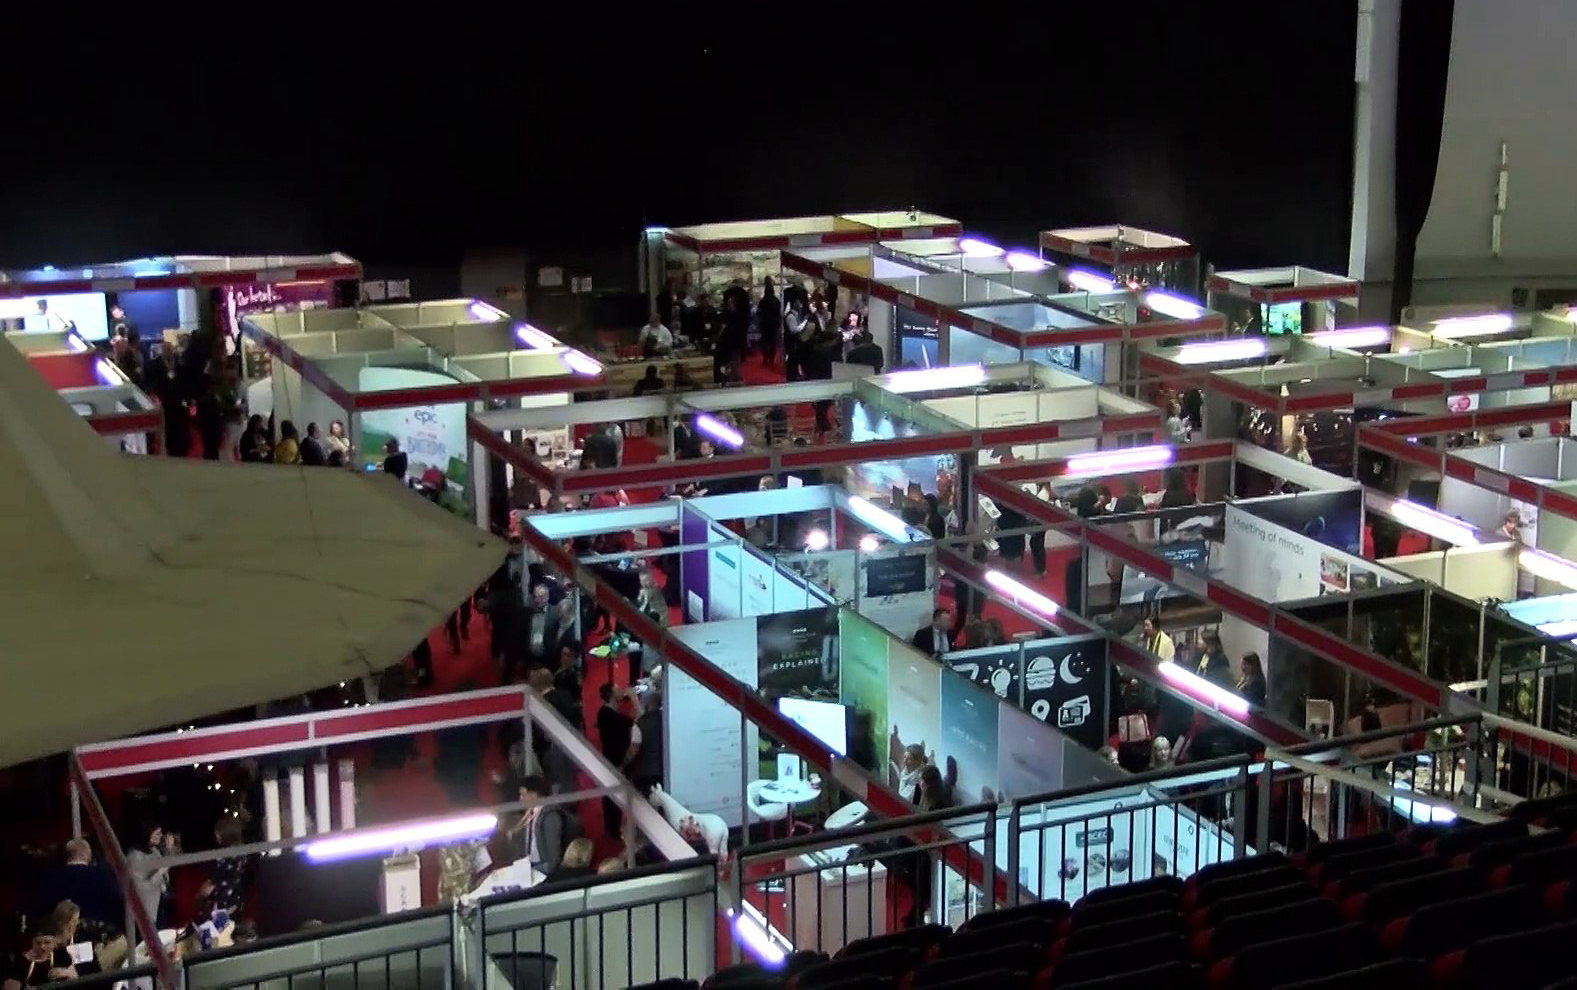 The Future of Event Design: The Conference & Hospitality Show 2019